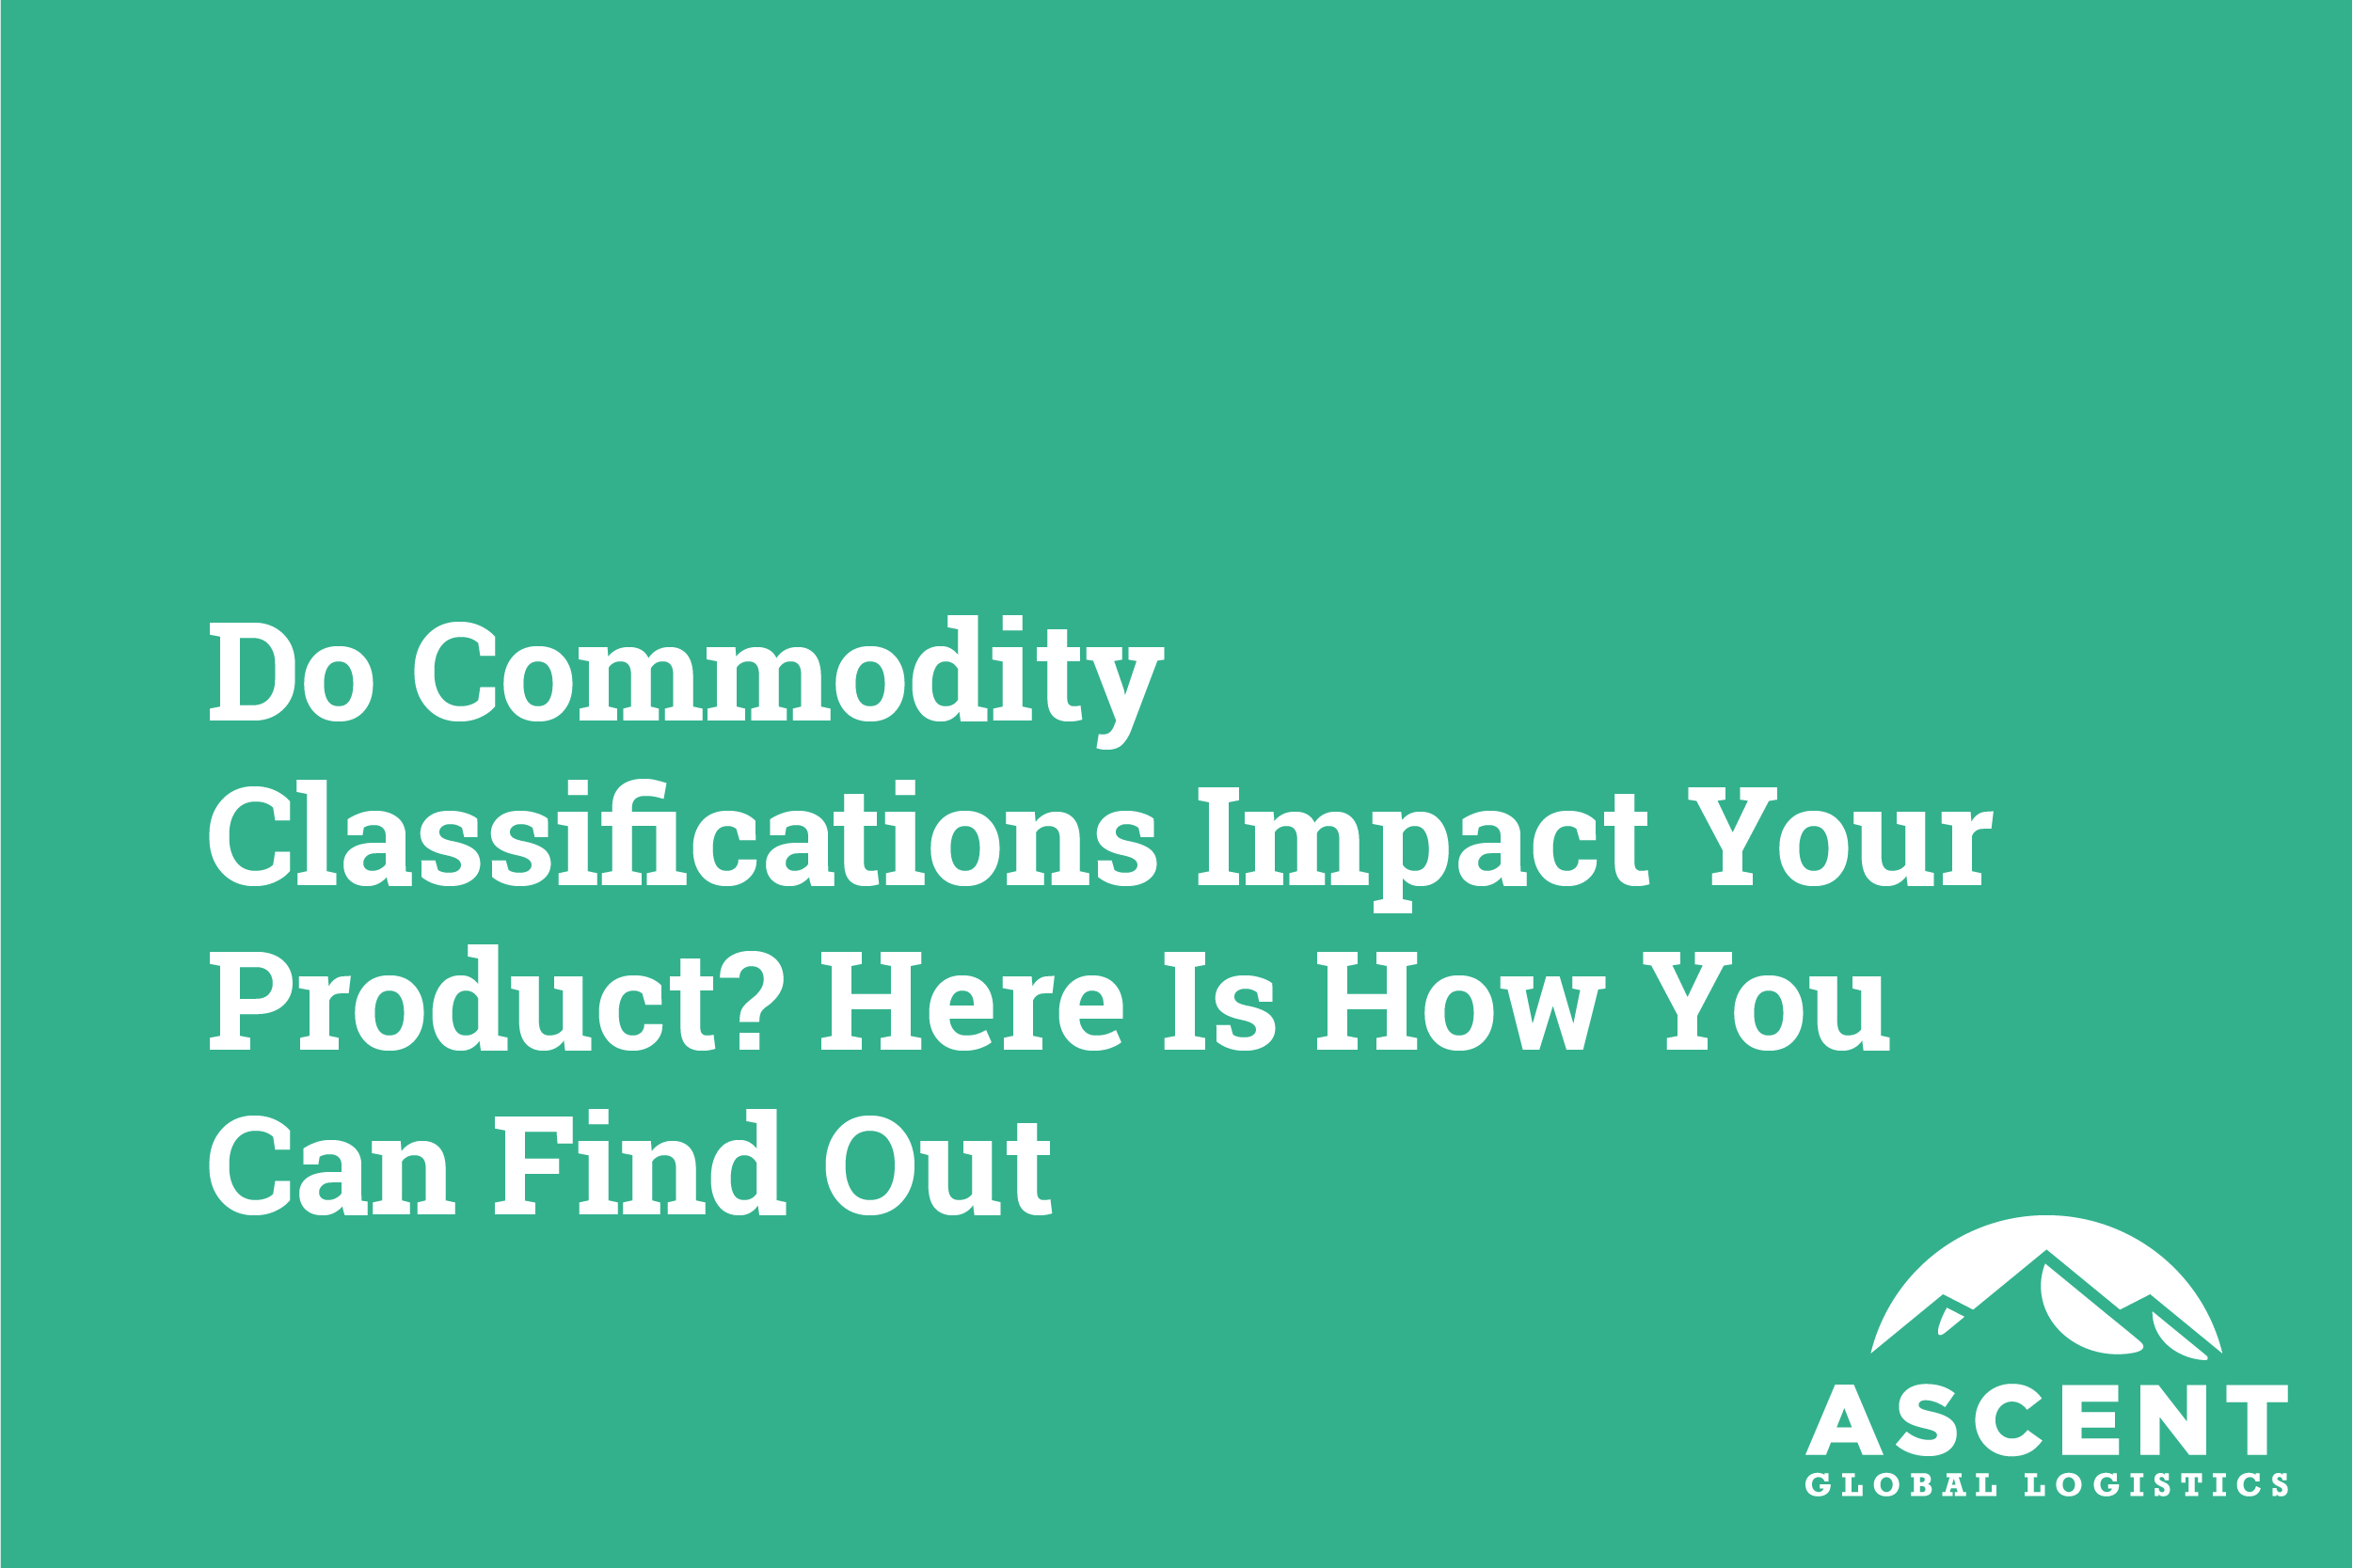 Do Commodity Classifications Impact Your Product? Here Is How You